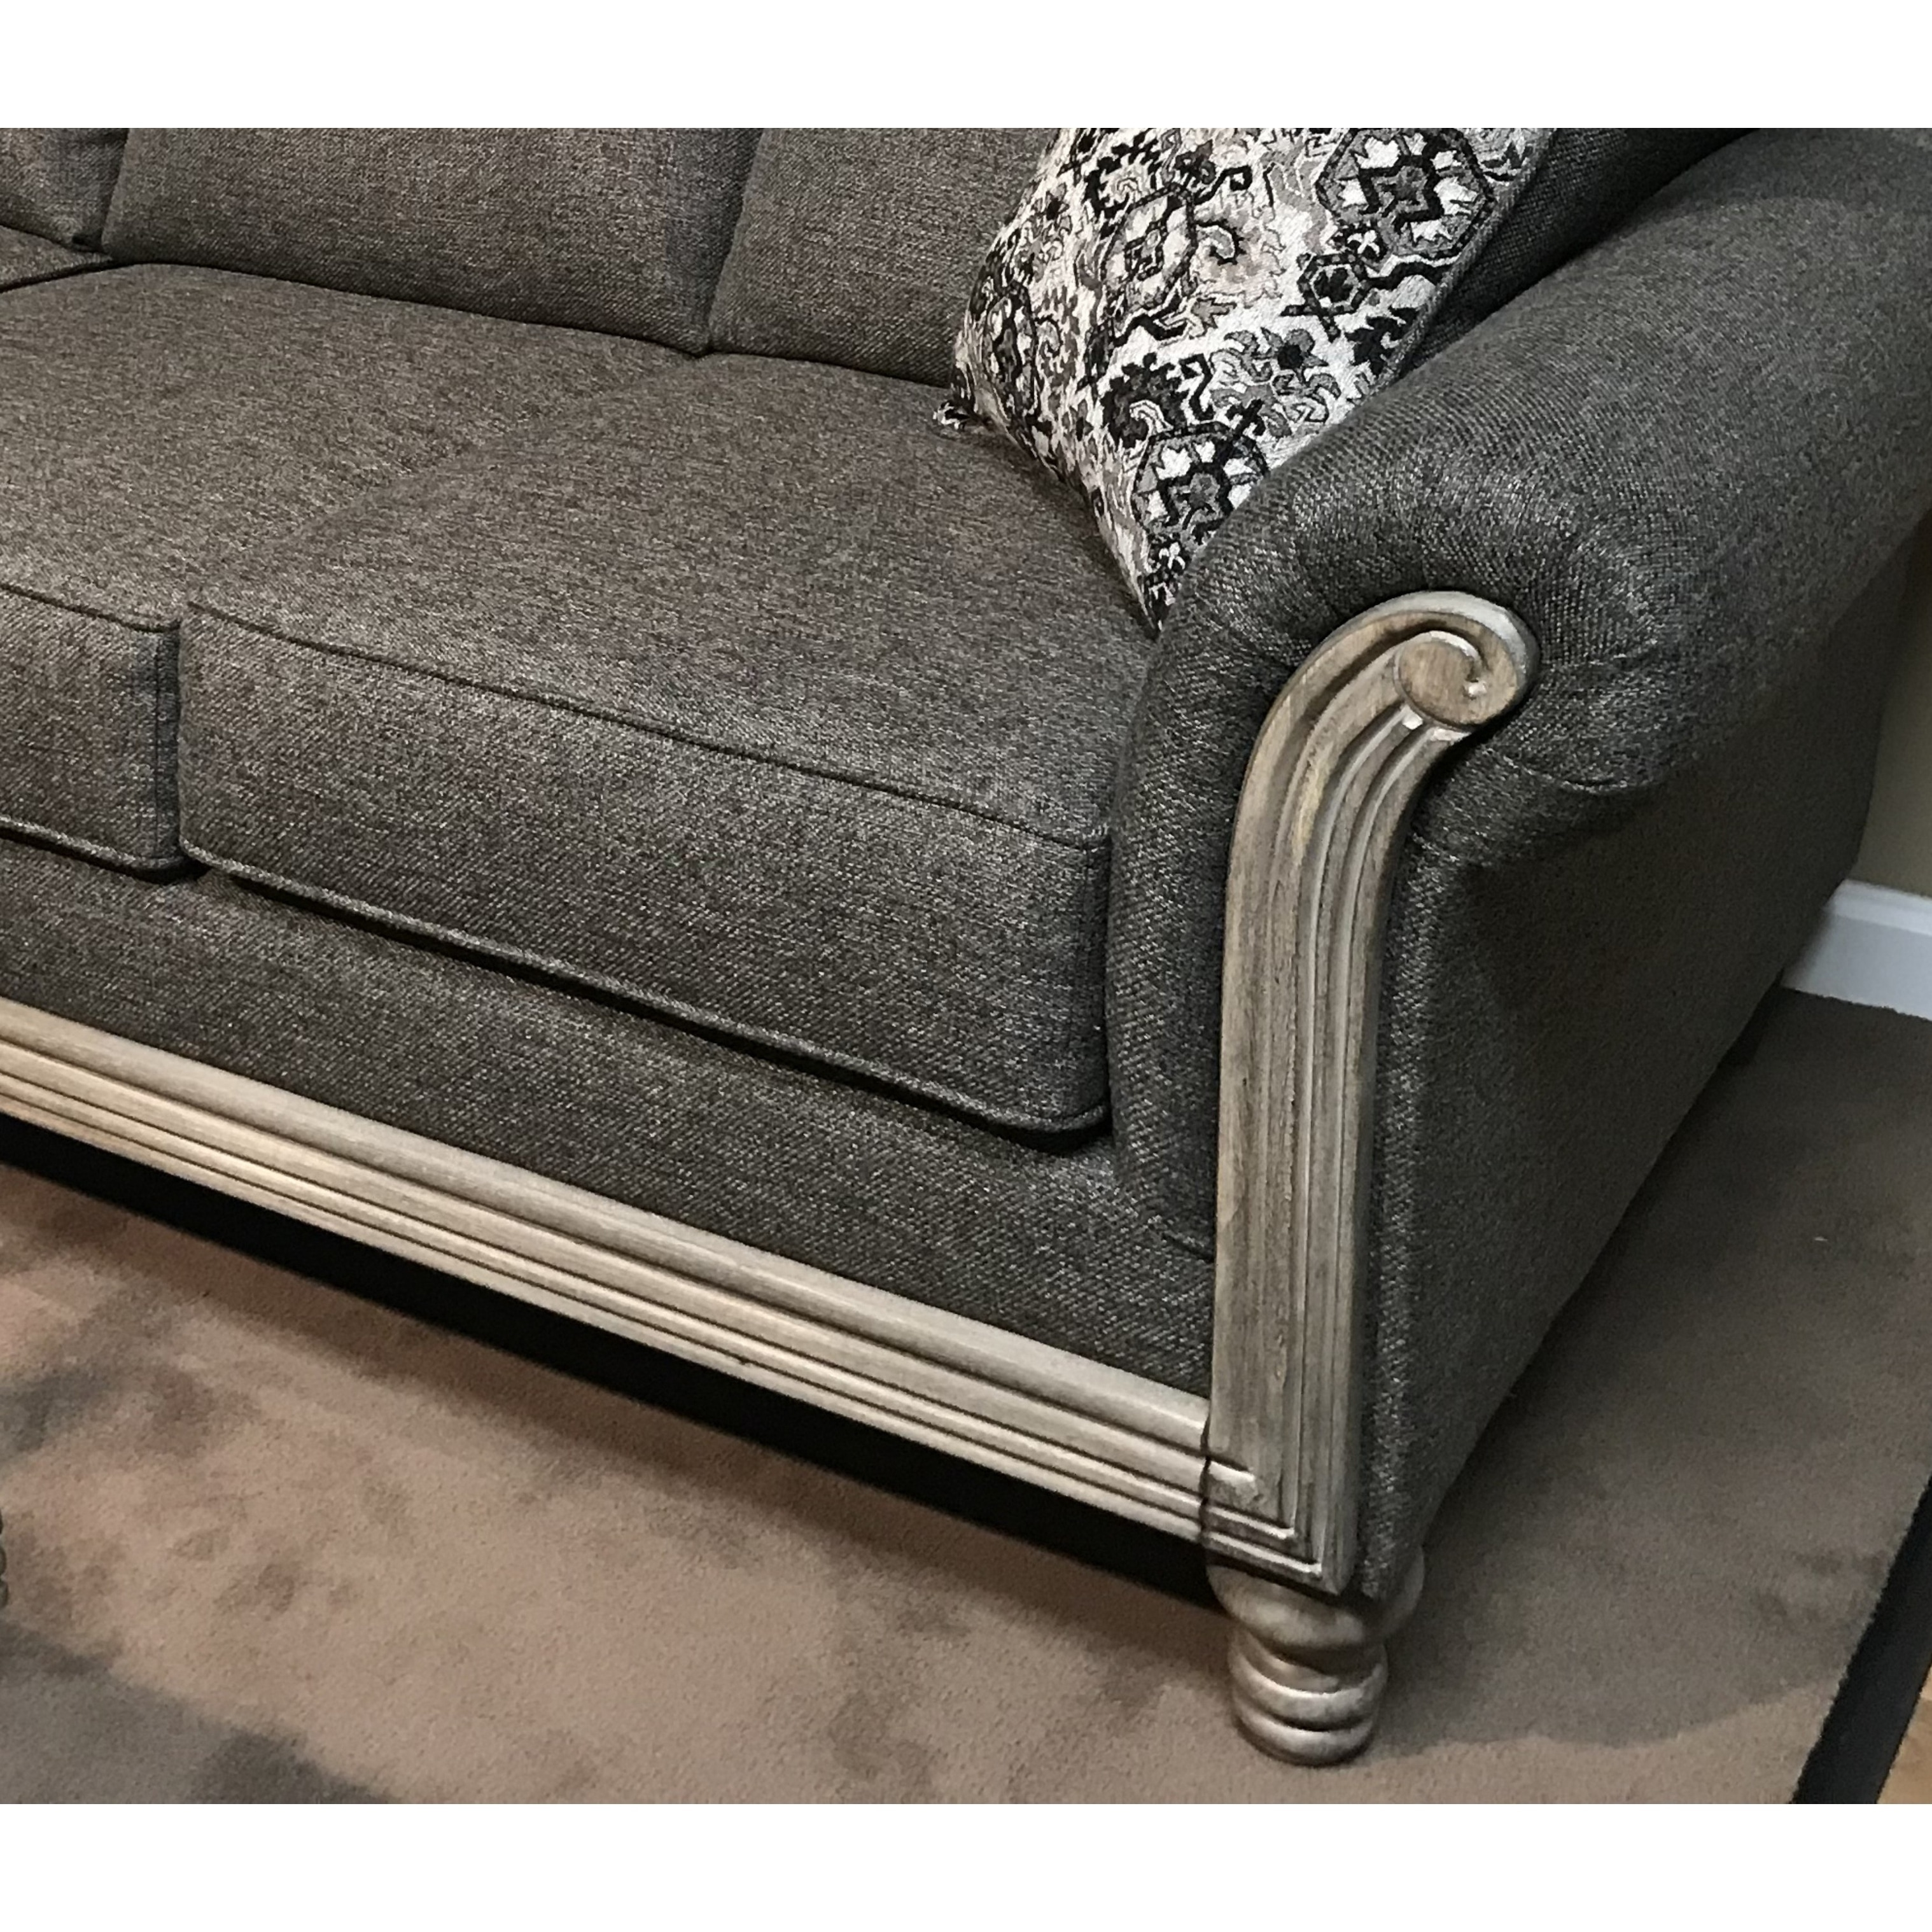 swan magnussen wood frame threshold free floating with products width transitional trim height home exposed swanloveseat item loveseat